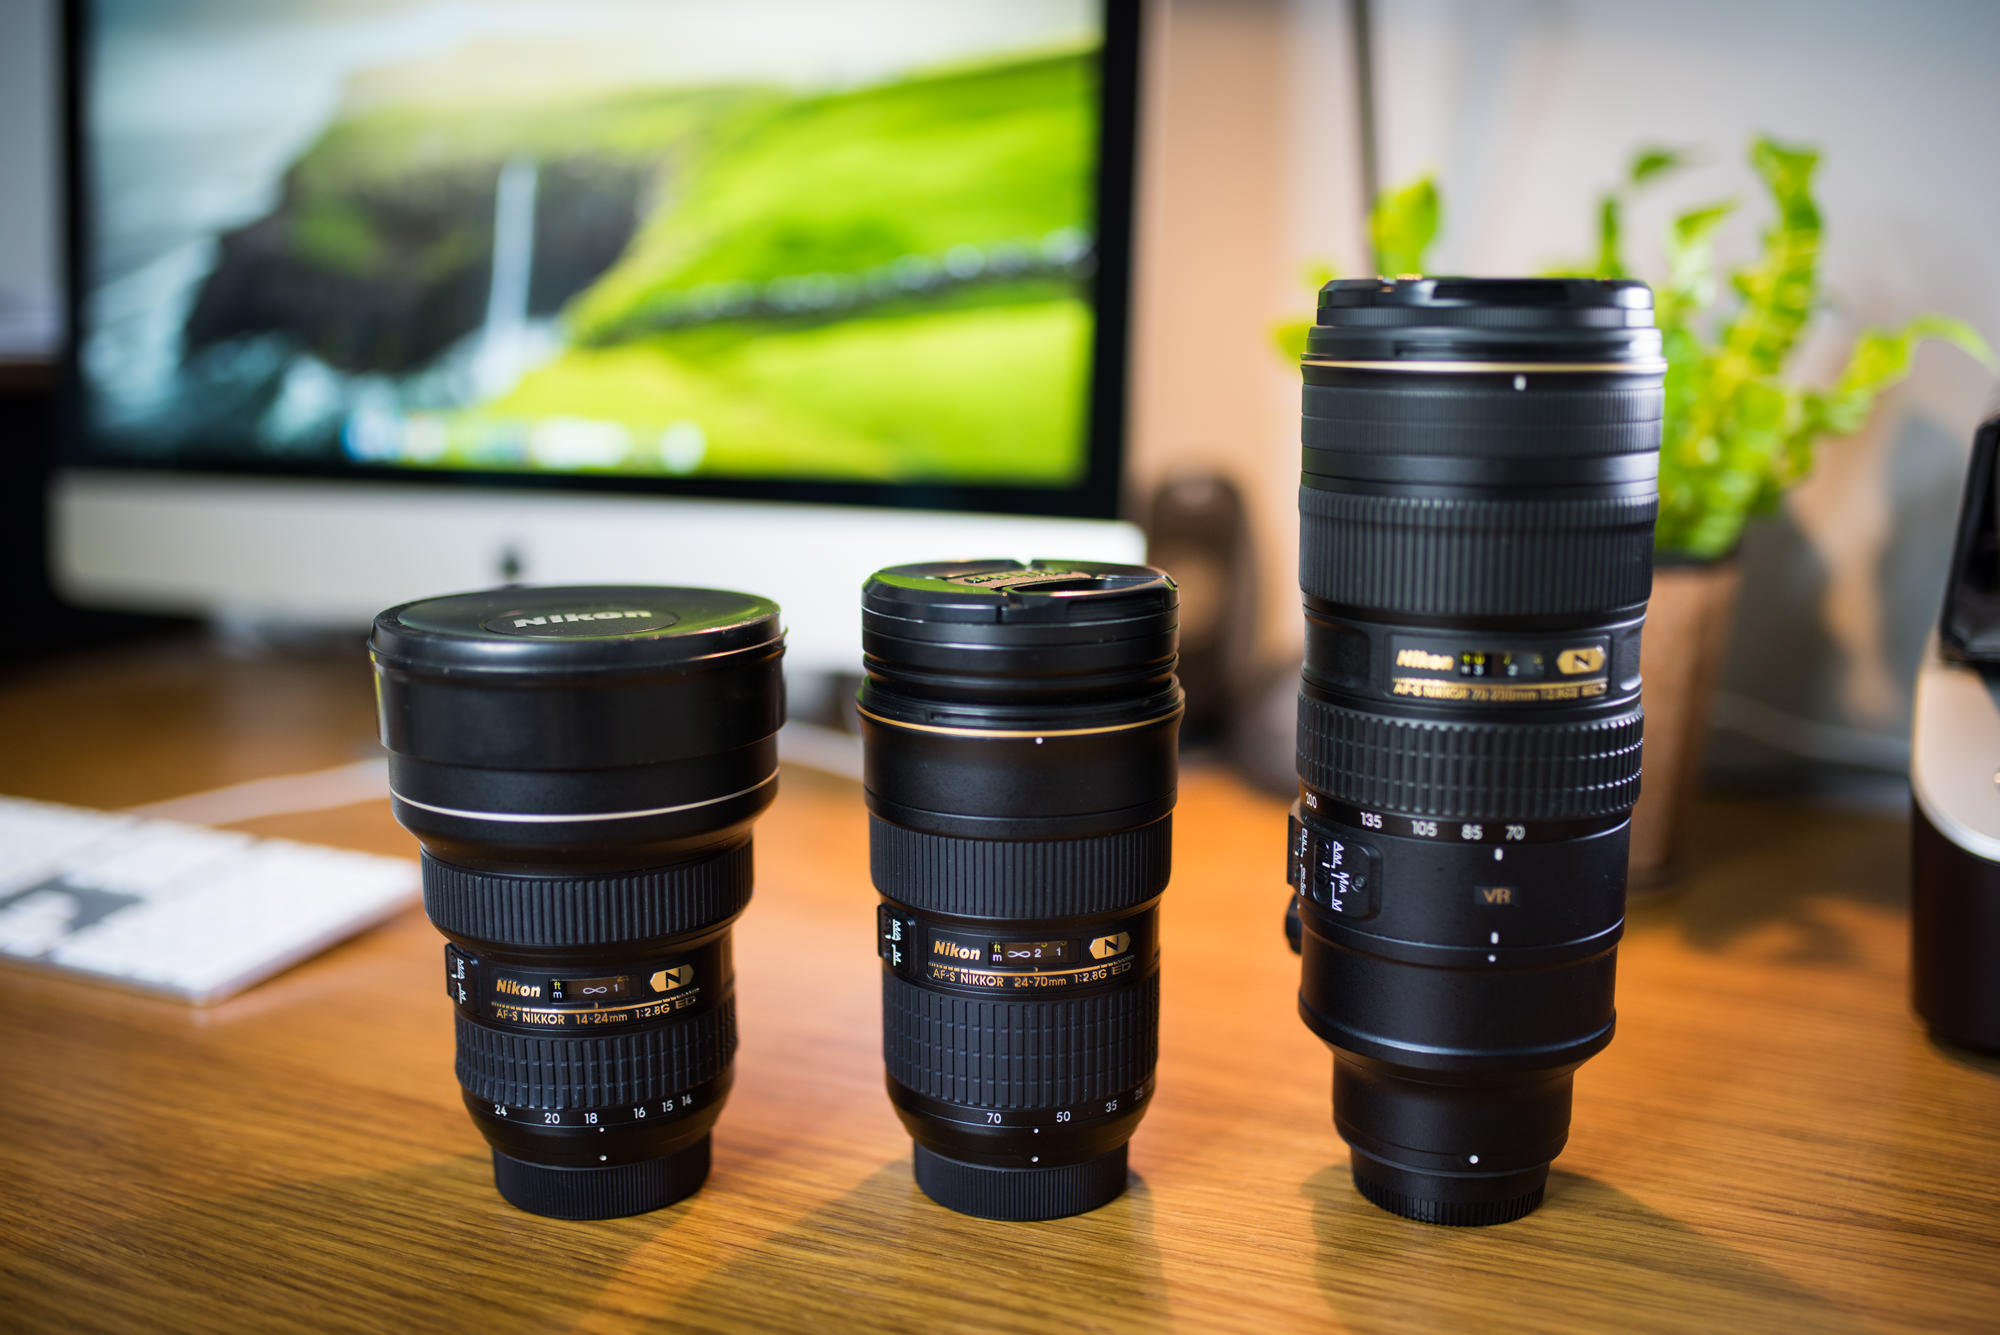 Three of the best lenses for landscape photography sitting on a desk